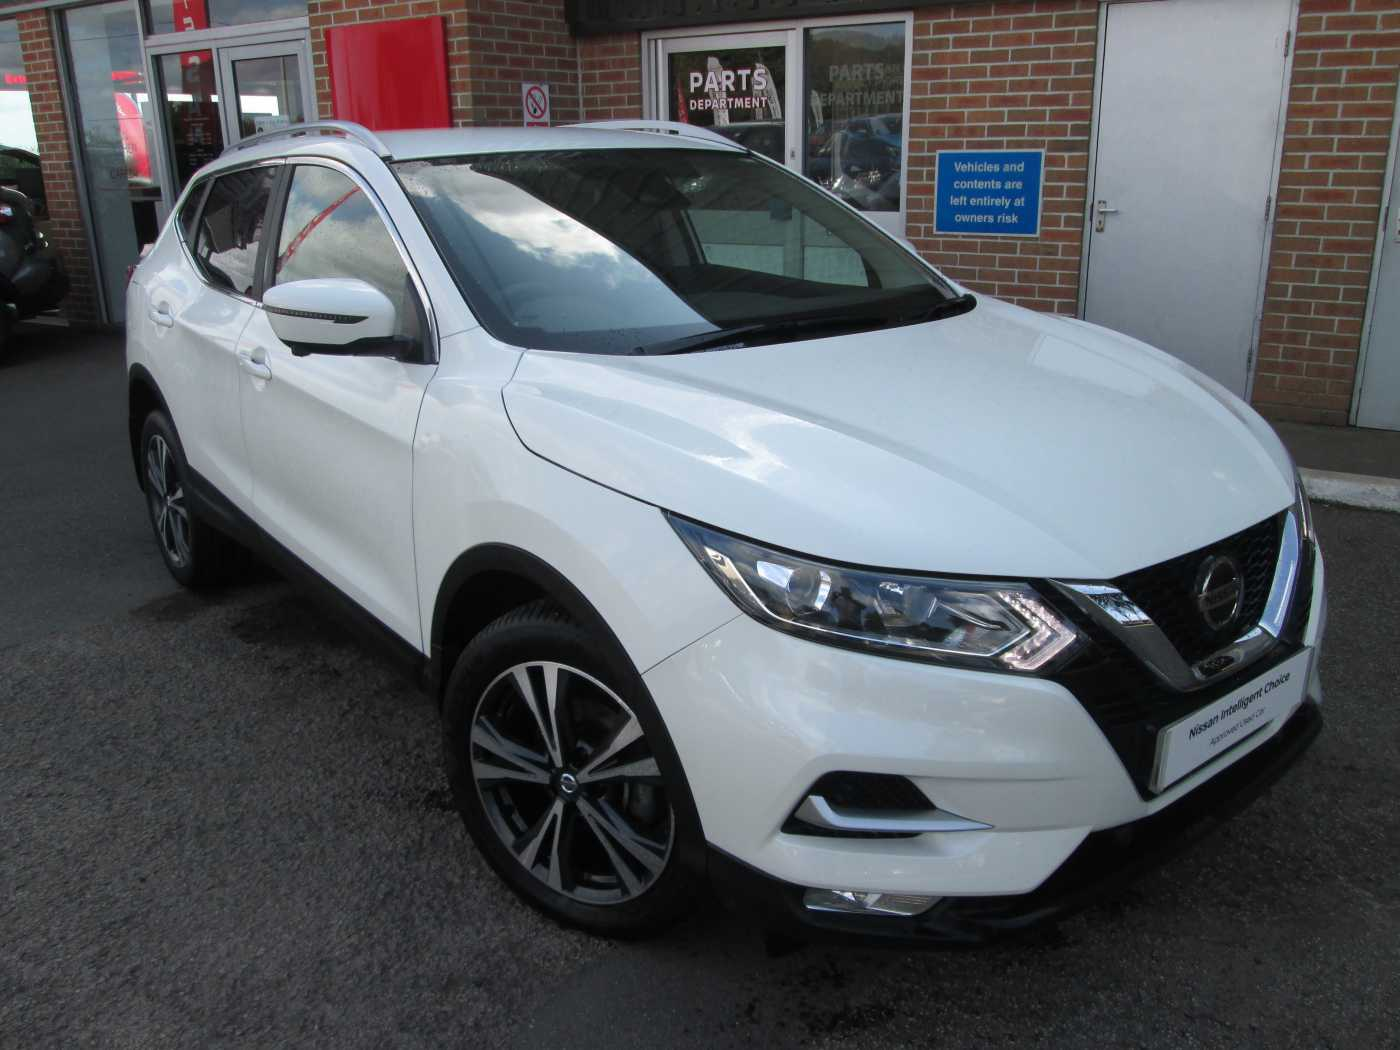 nissan qashqai white for sale in truro nissan used cars. Black Bedroom Furniture Sets. Home Design Ideas